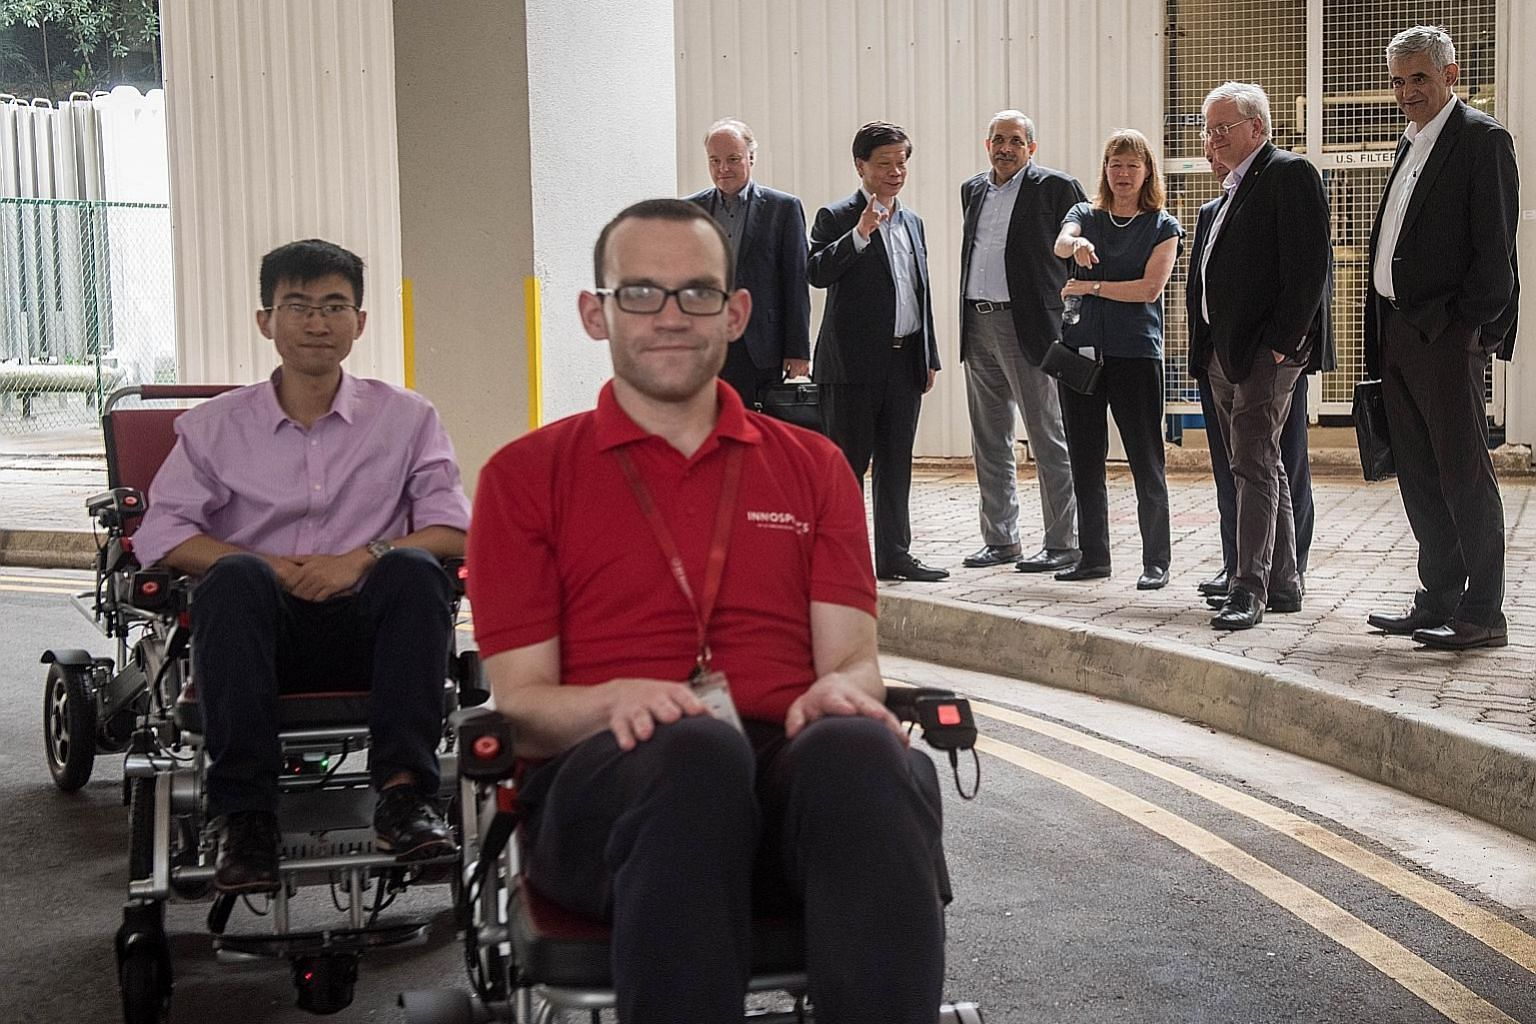 Members of the International Academic Advisory Panel observing a demonstration of Folo Fleet, a semi-autonomous smart mobility device convoy system, at NTU on Wednesday, as part of their three-day meeting. Key topics discussed were the value of a deg